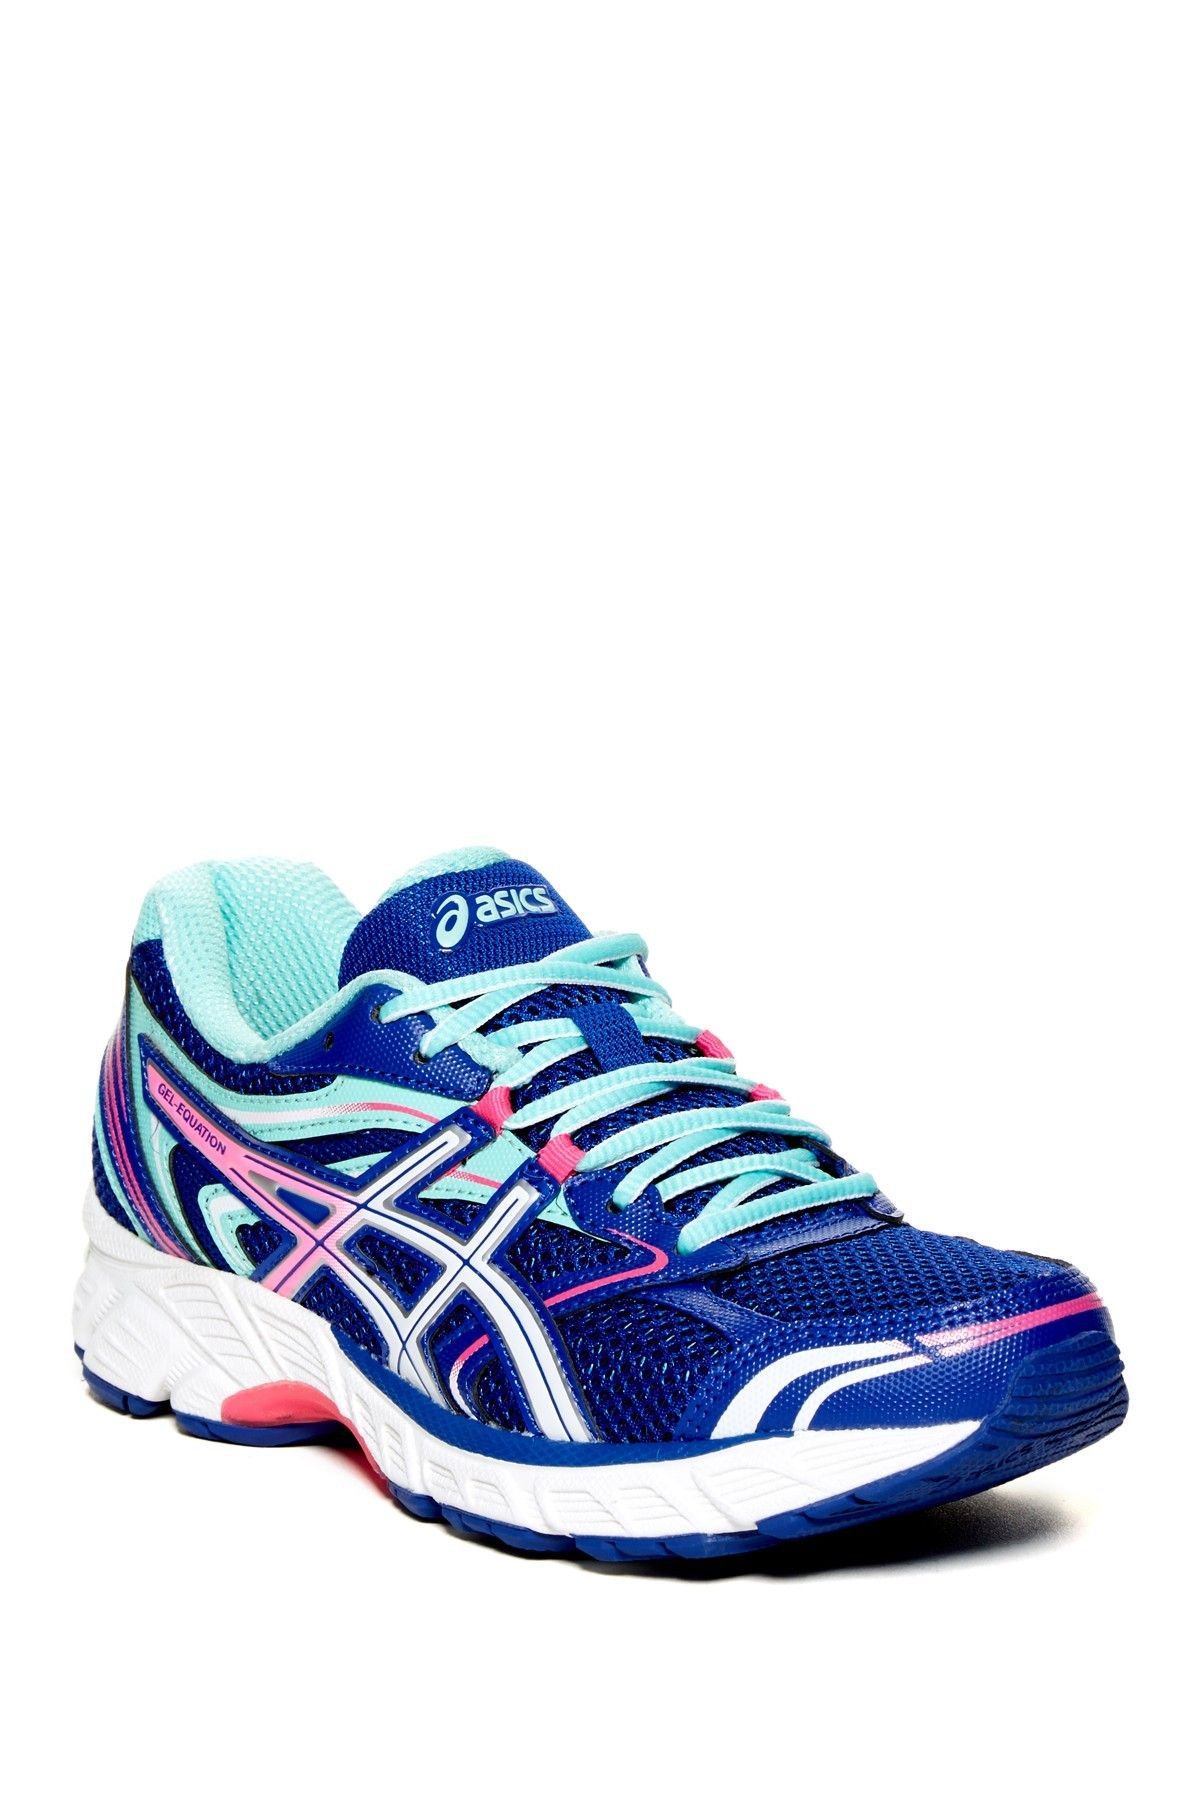 asics shoes on sale free shipping 665900